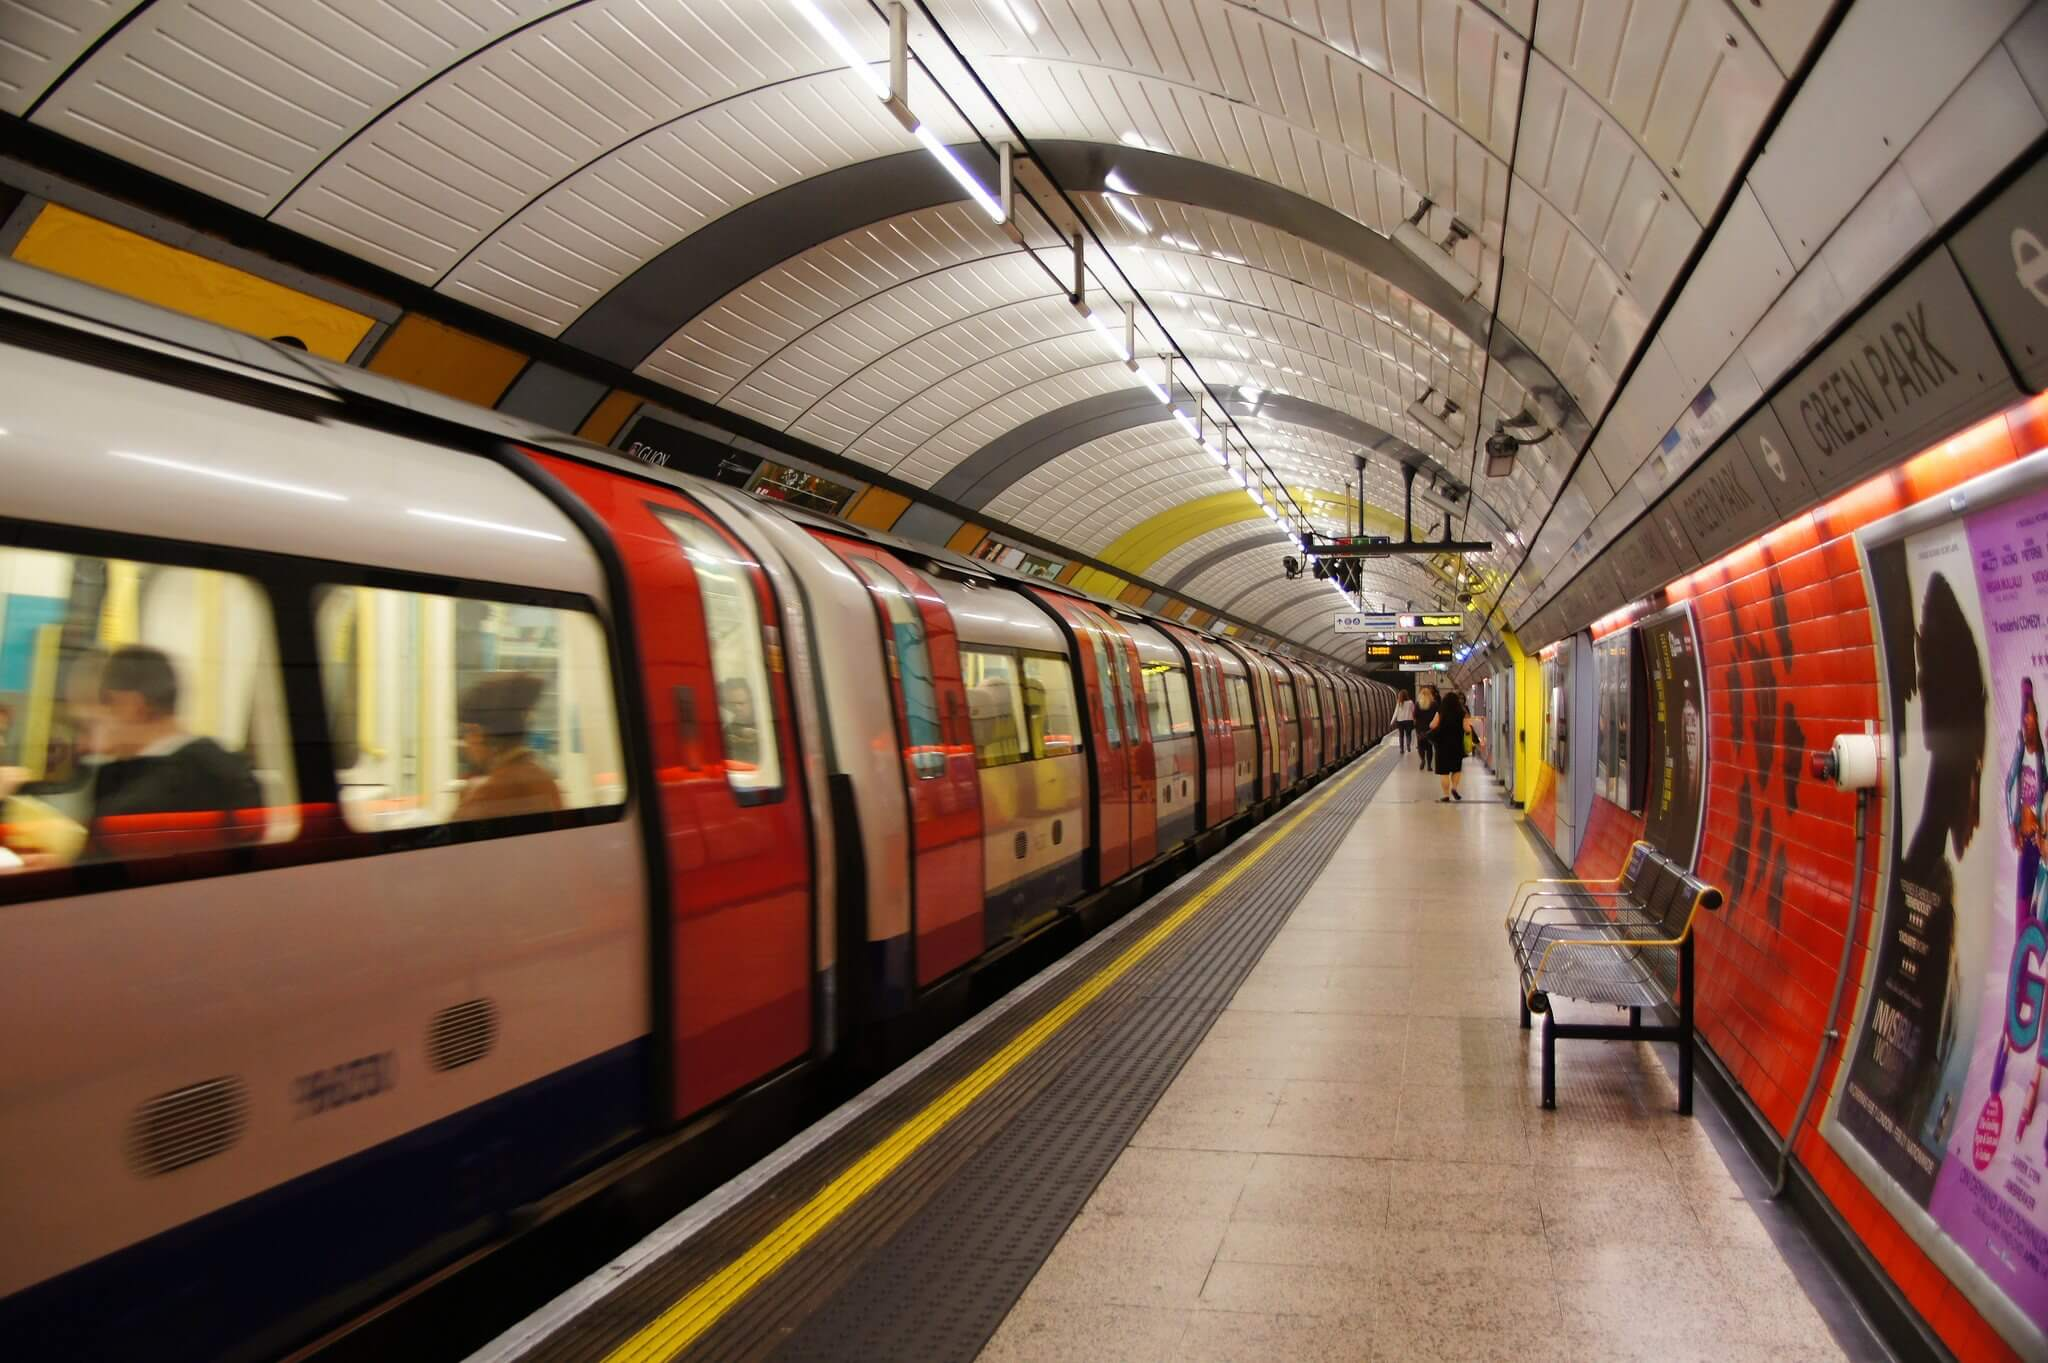 Exploring the London Underground